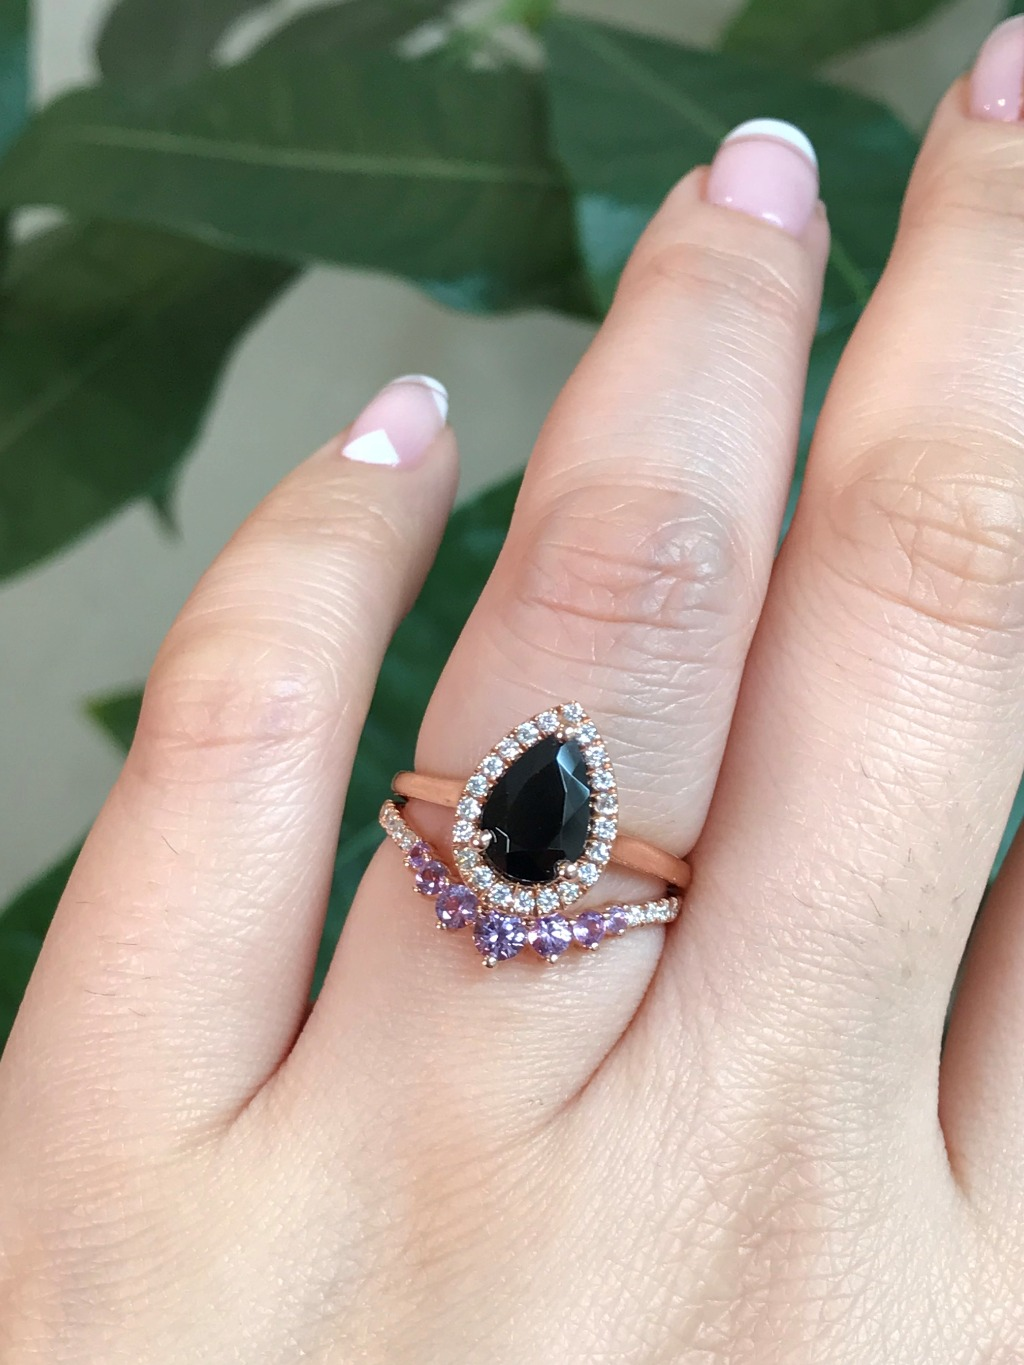 This halo diamond ring bridal set showcases a pear cut black spinel diamond engagement ring in 14k rose gold halo diamond ring setting